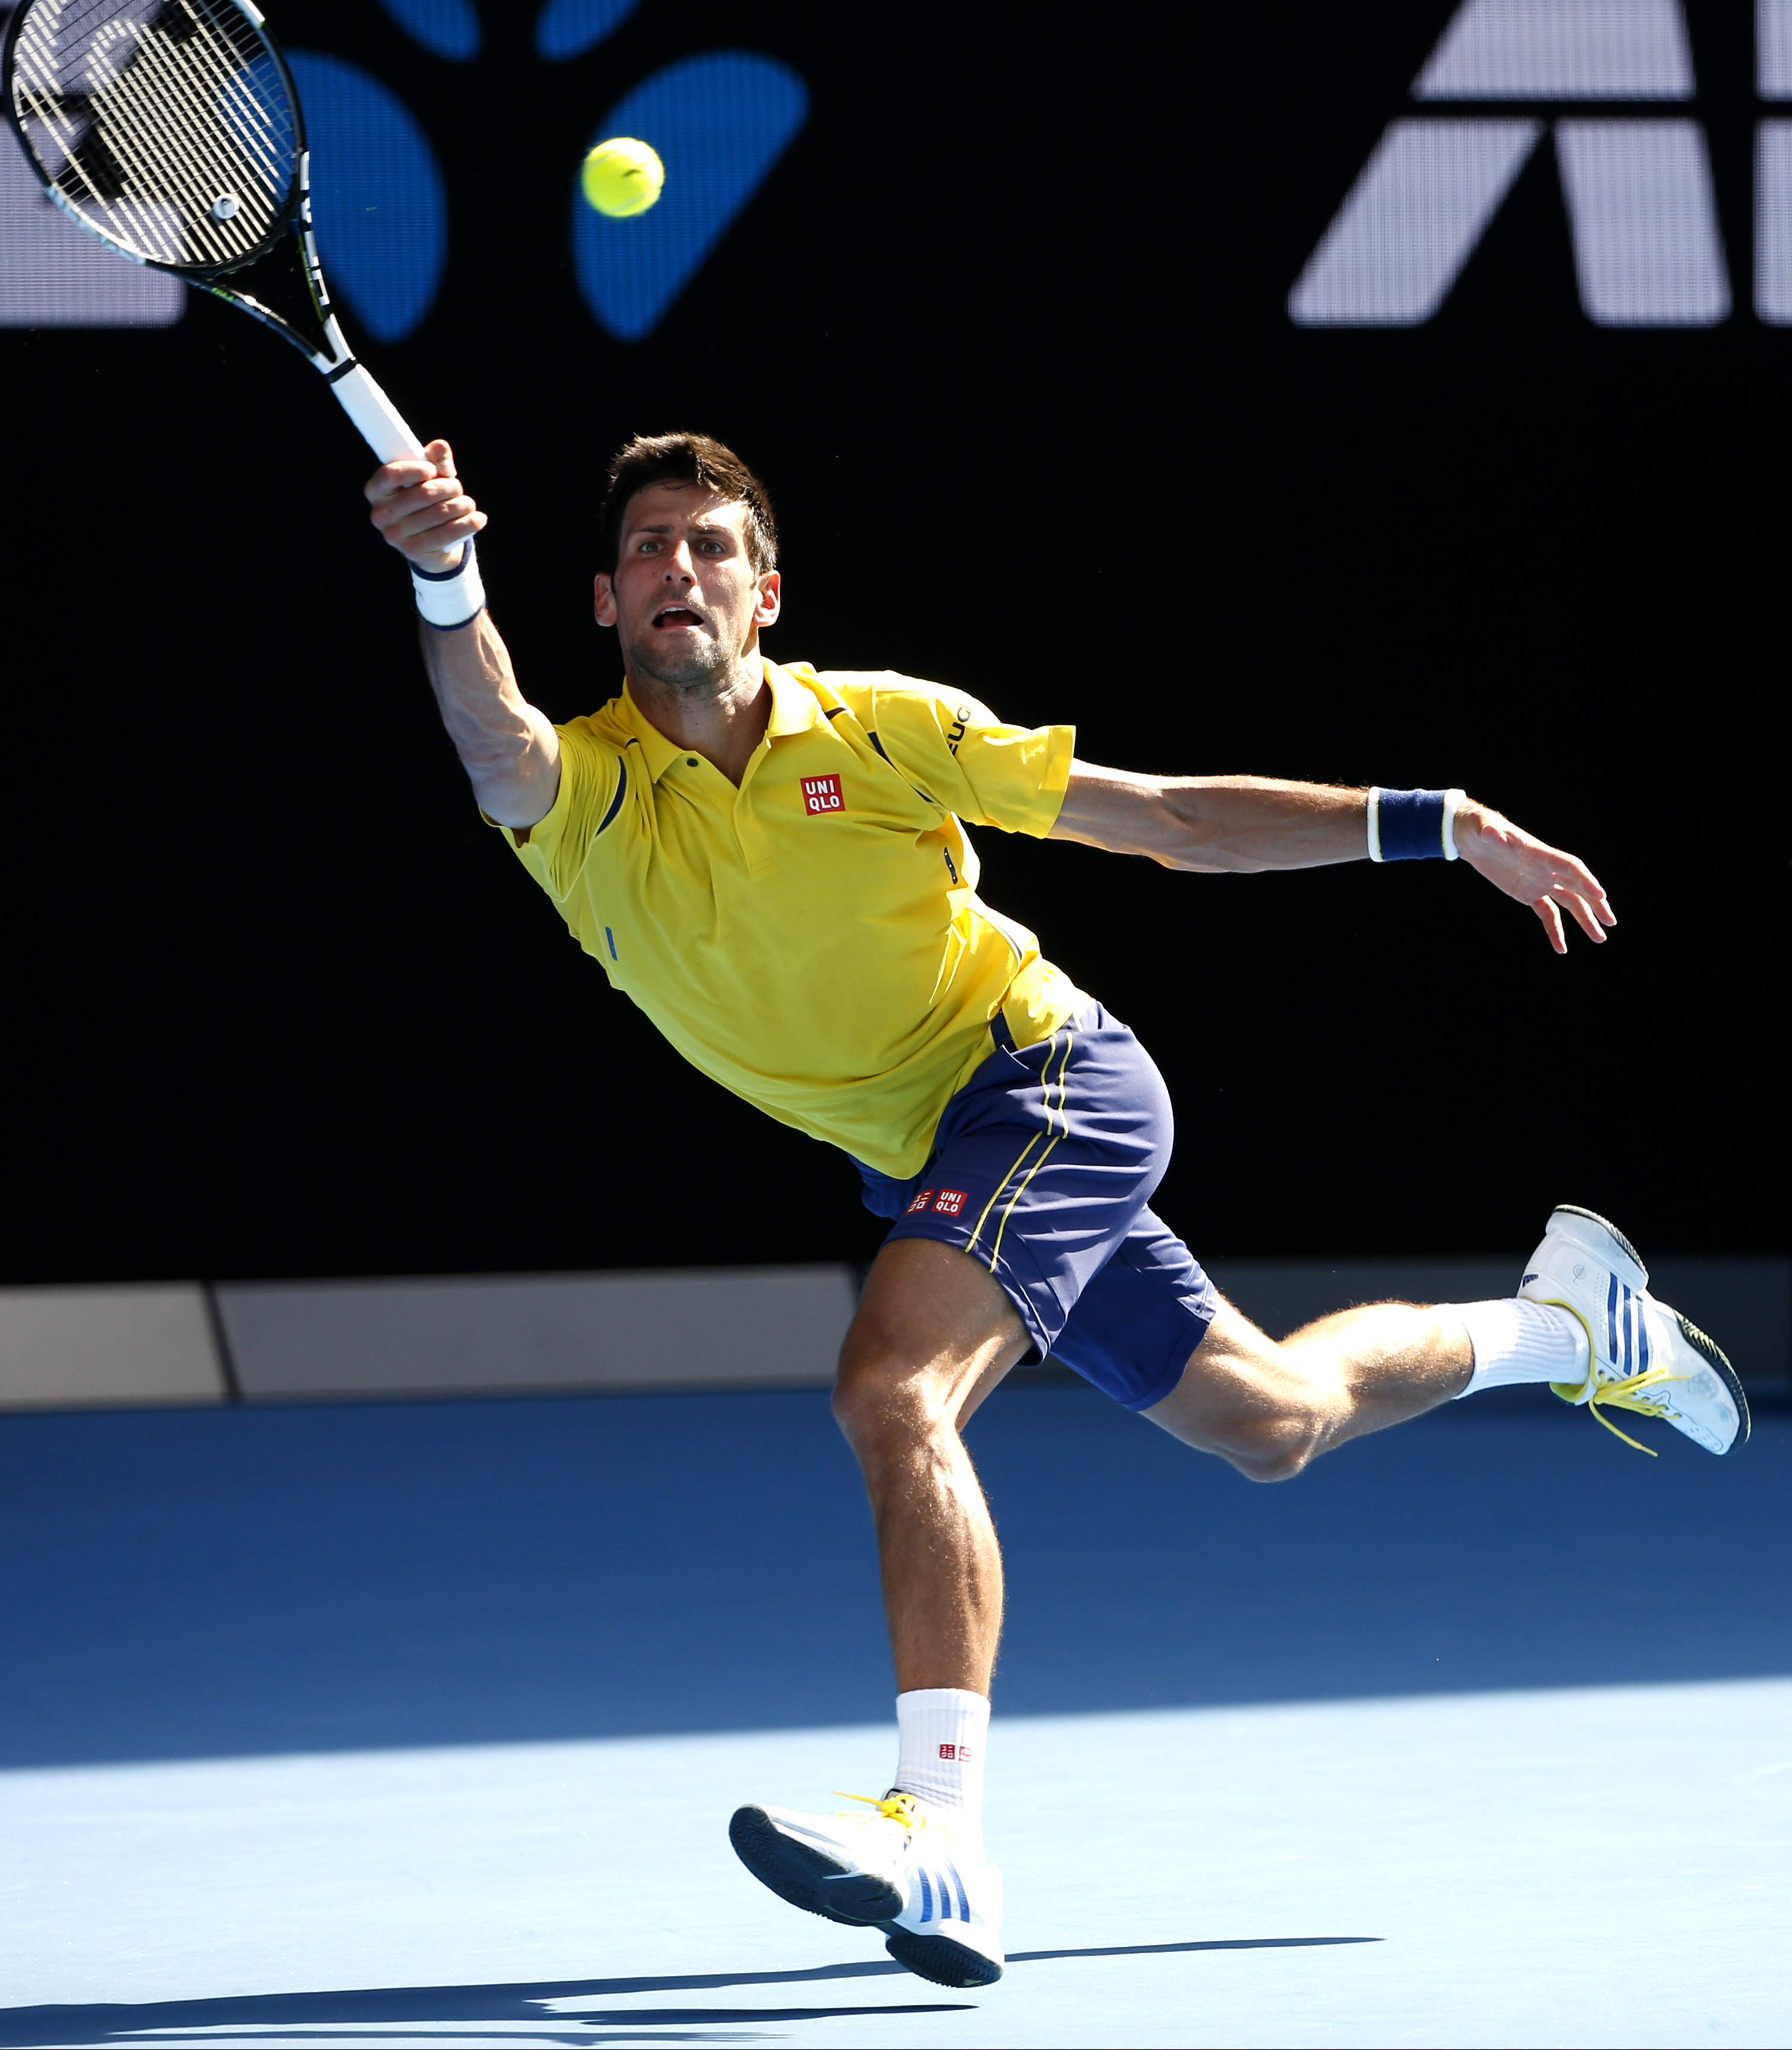 Novak Djokovic of Serbia reaches for a shot during his first round match against Chung Hyeon of South Korea  at the Australian Open tennis championships in Melbourne, Australia, Monday, Jan. 18, 2016.(AP Photo/Vincent Thian)